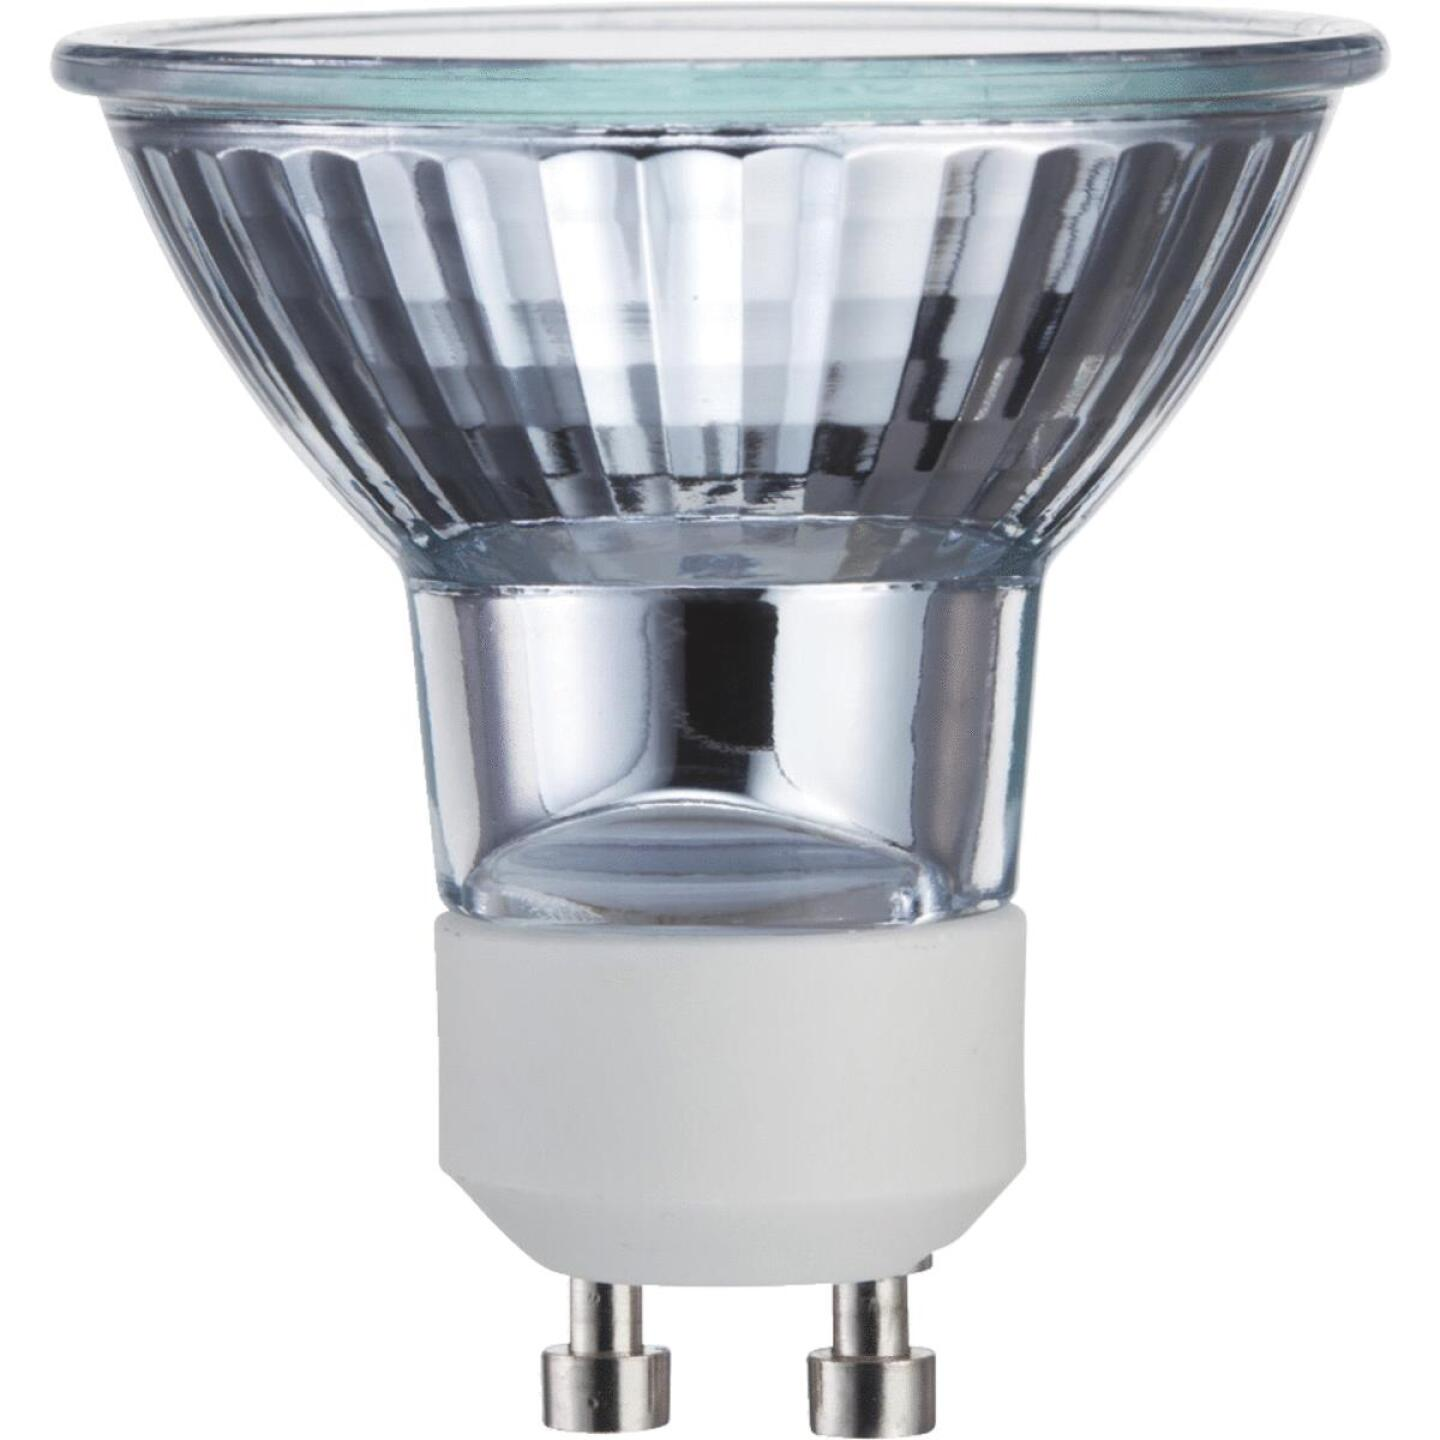 Philips 45W Equivalent Clear GU10 Base MR16 Halogen Floodlight Light Bulb Image 2